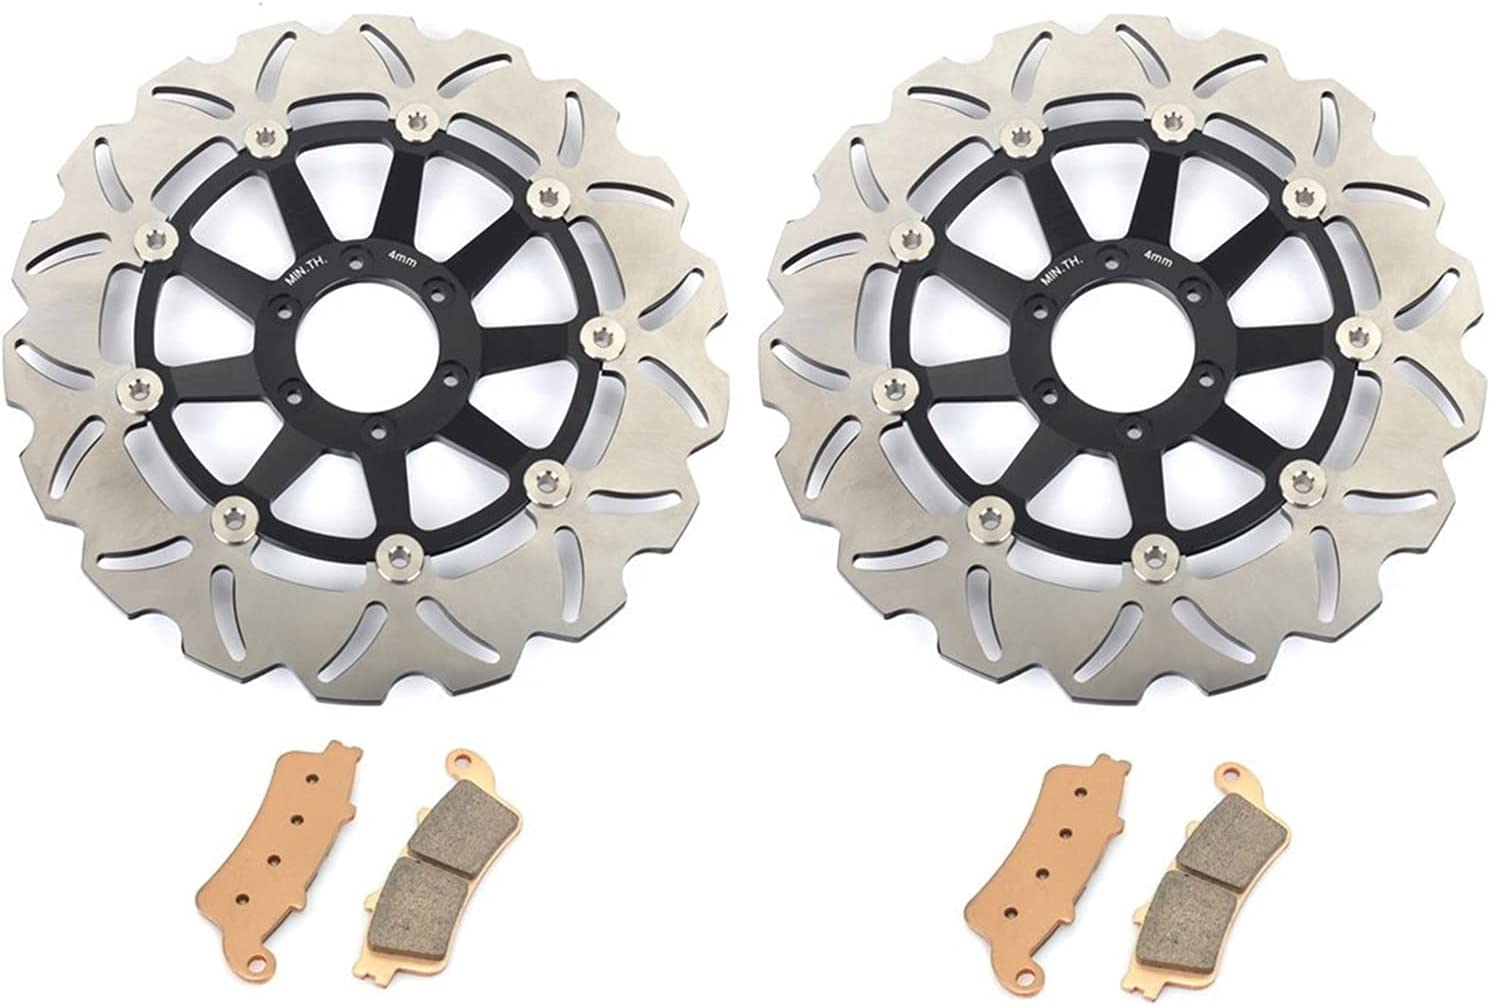 Motorcycle Brake disc Rotor Front Disks Outlet sale feature P Direct store Discs Rotors and